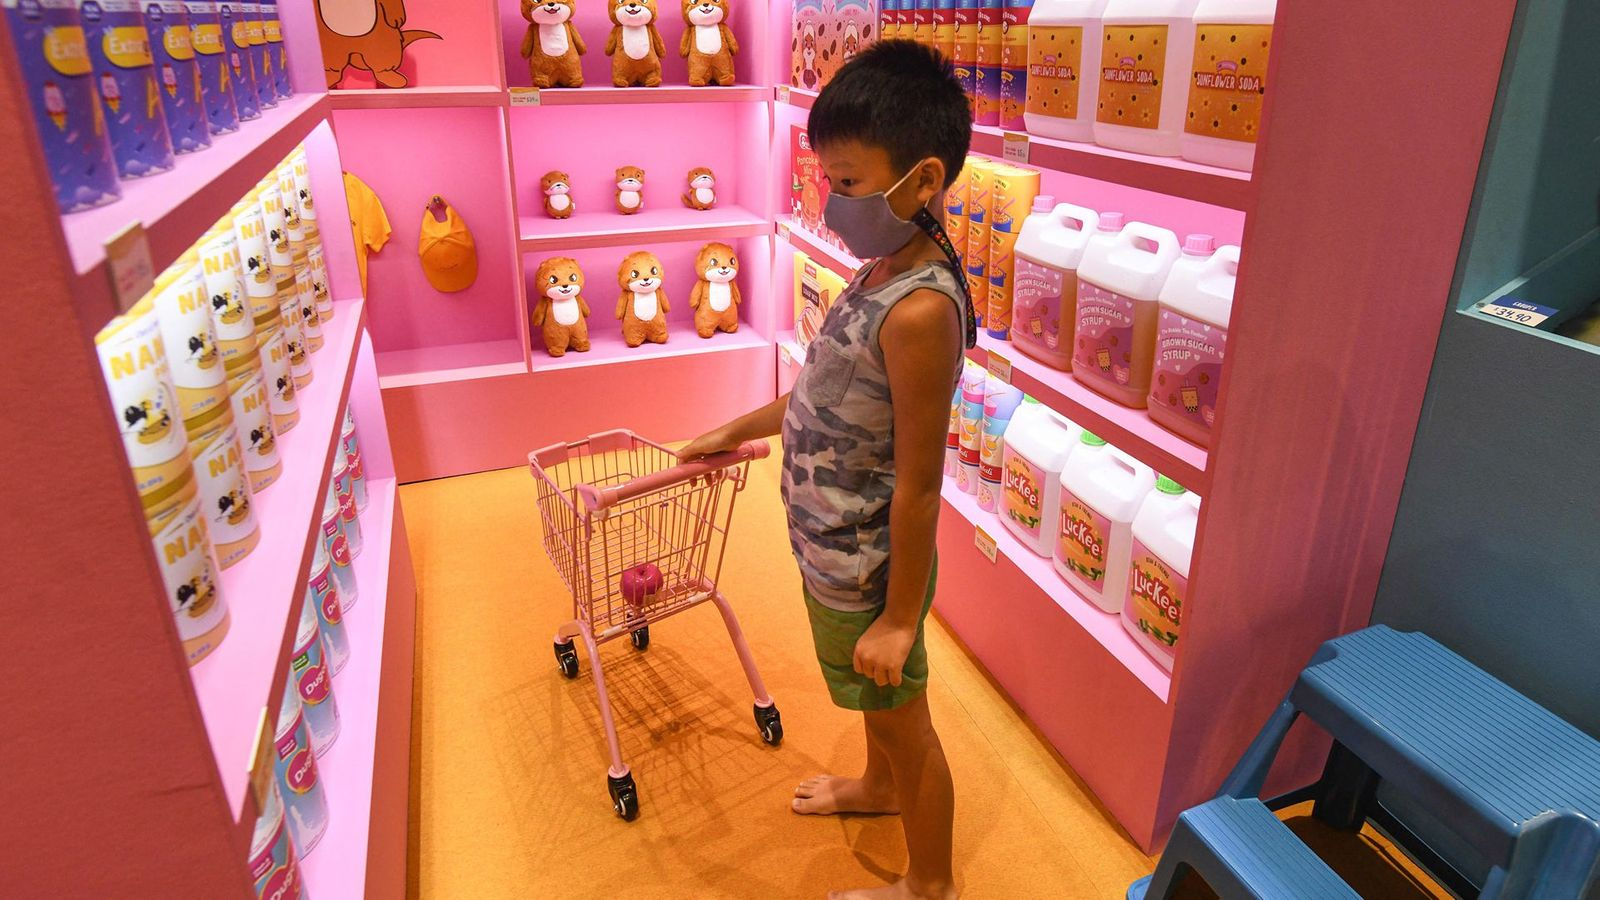 In Singapore, it's common for young children to wear masks against Covid – but some parents worry it might affect their development (Credit: Getty Images)